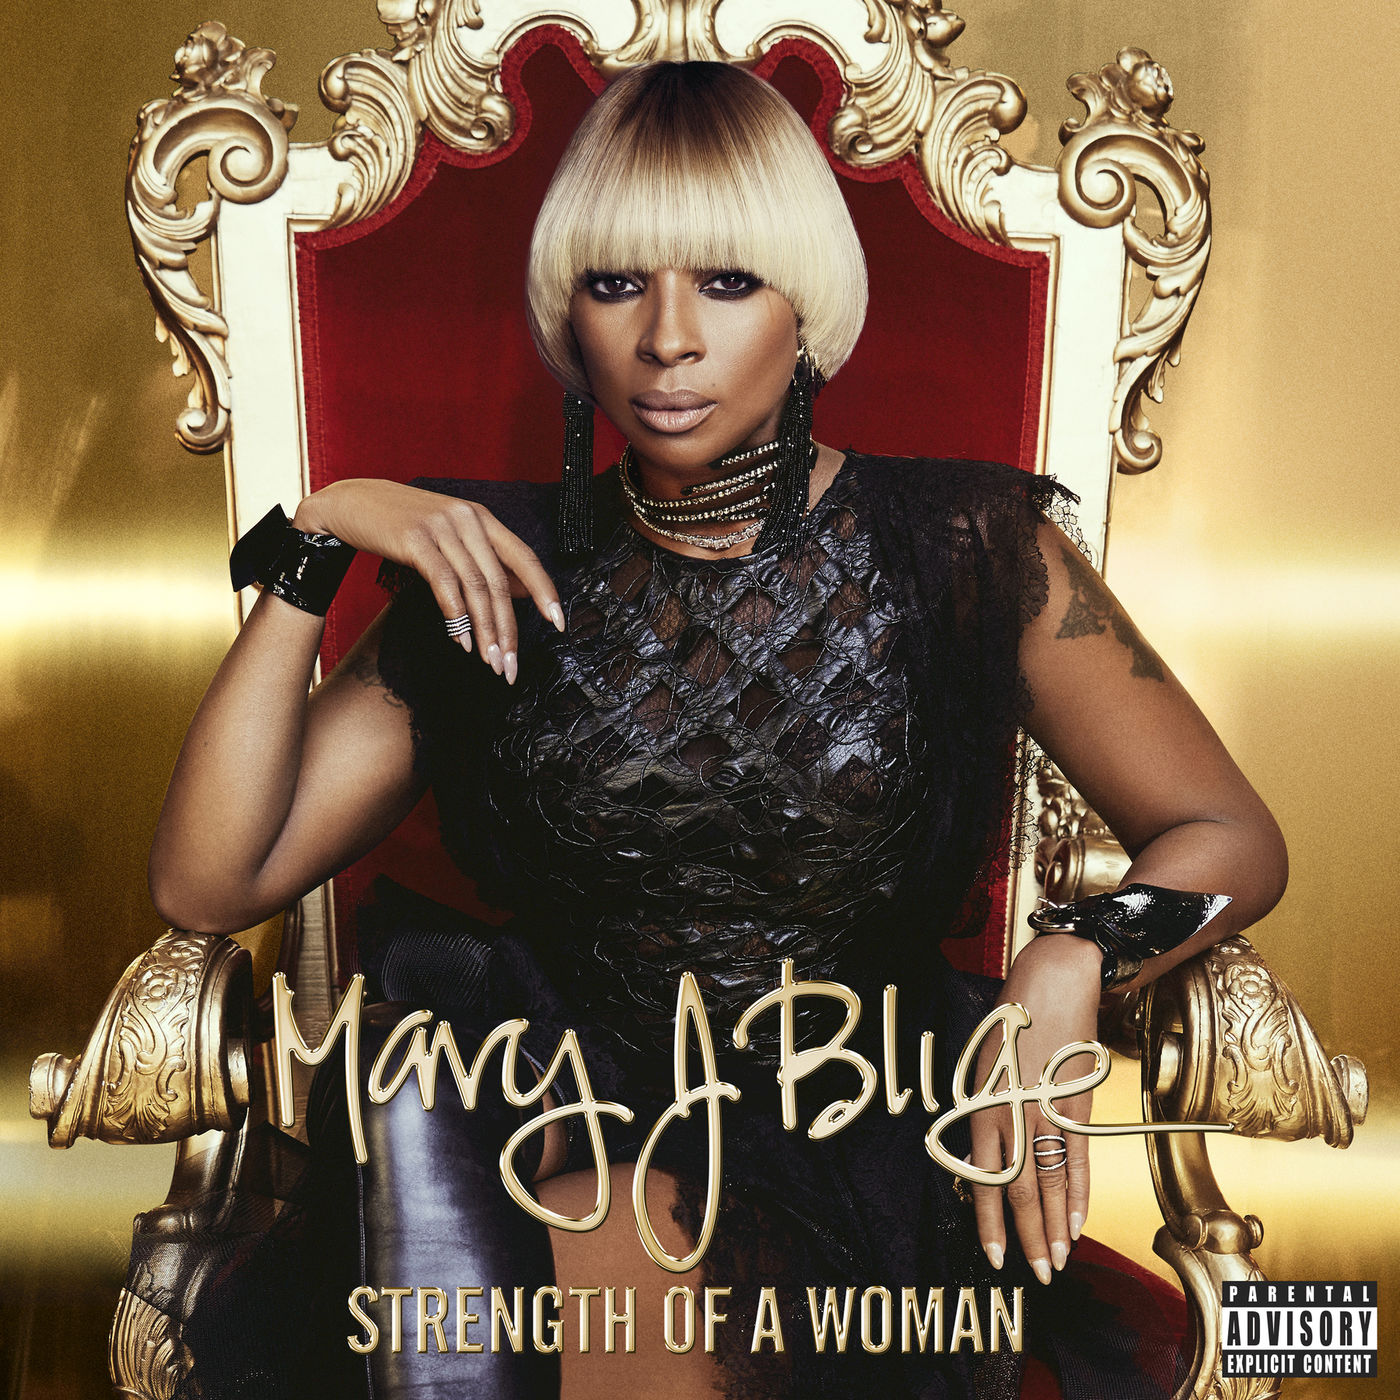 Mary J. Blige strength of a woman